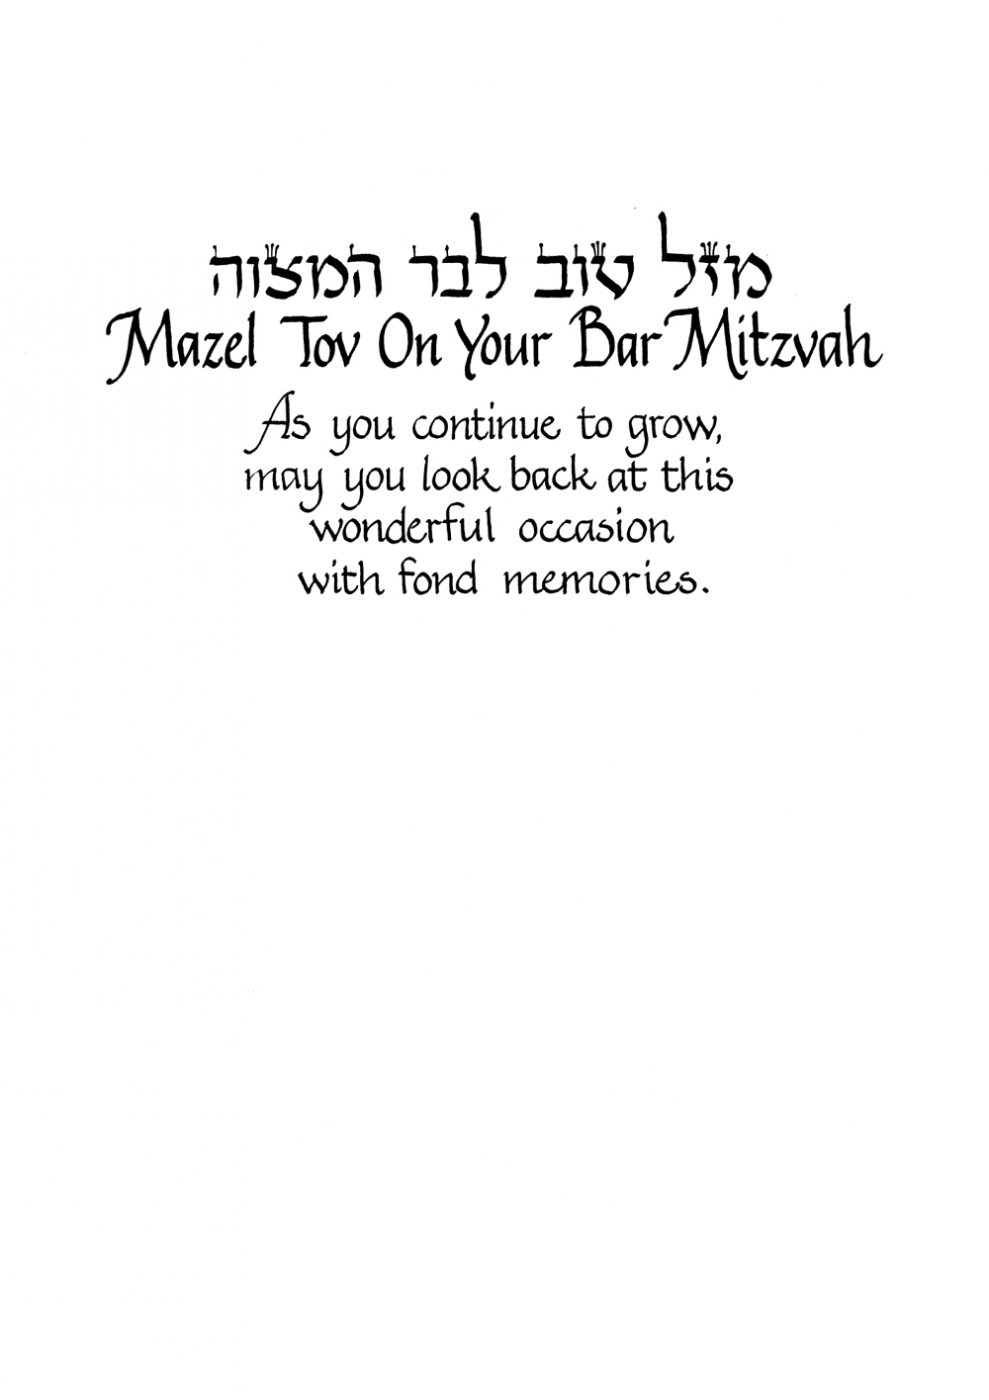 Bar Mitzvah Son Caspi Cards And Art